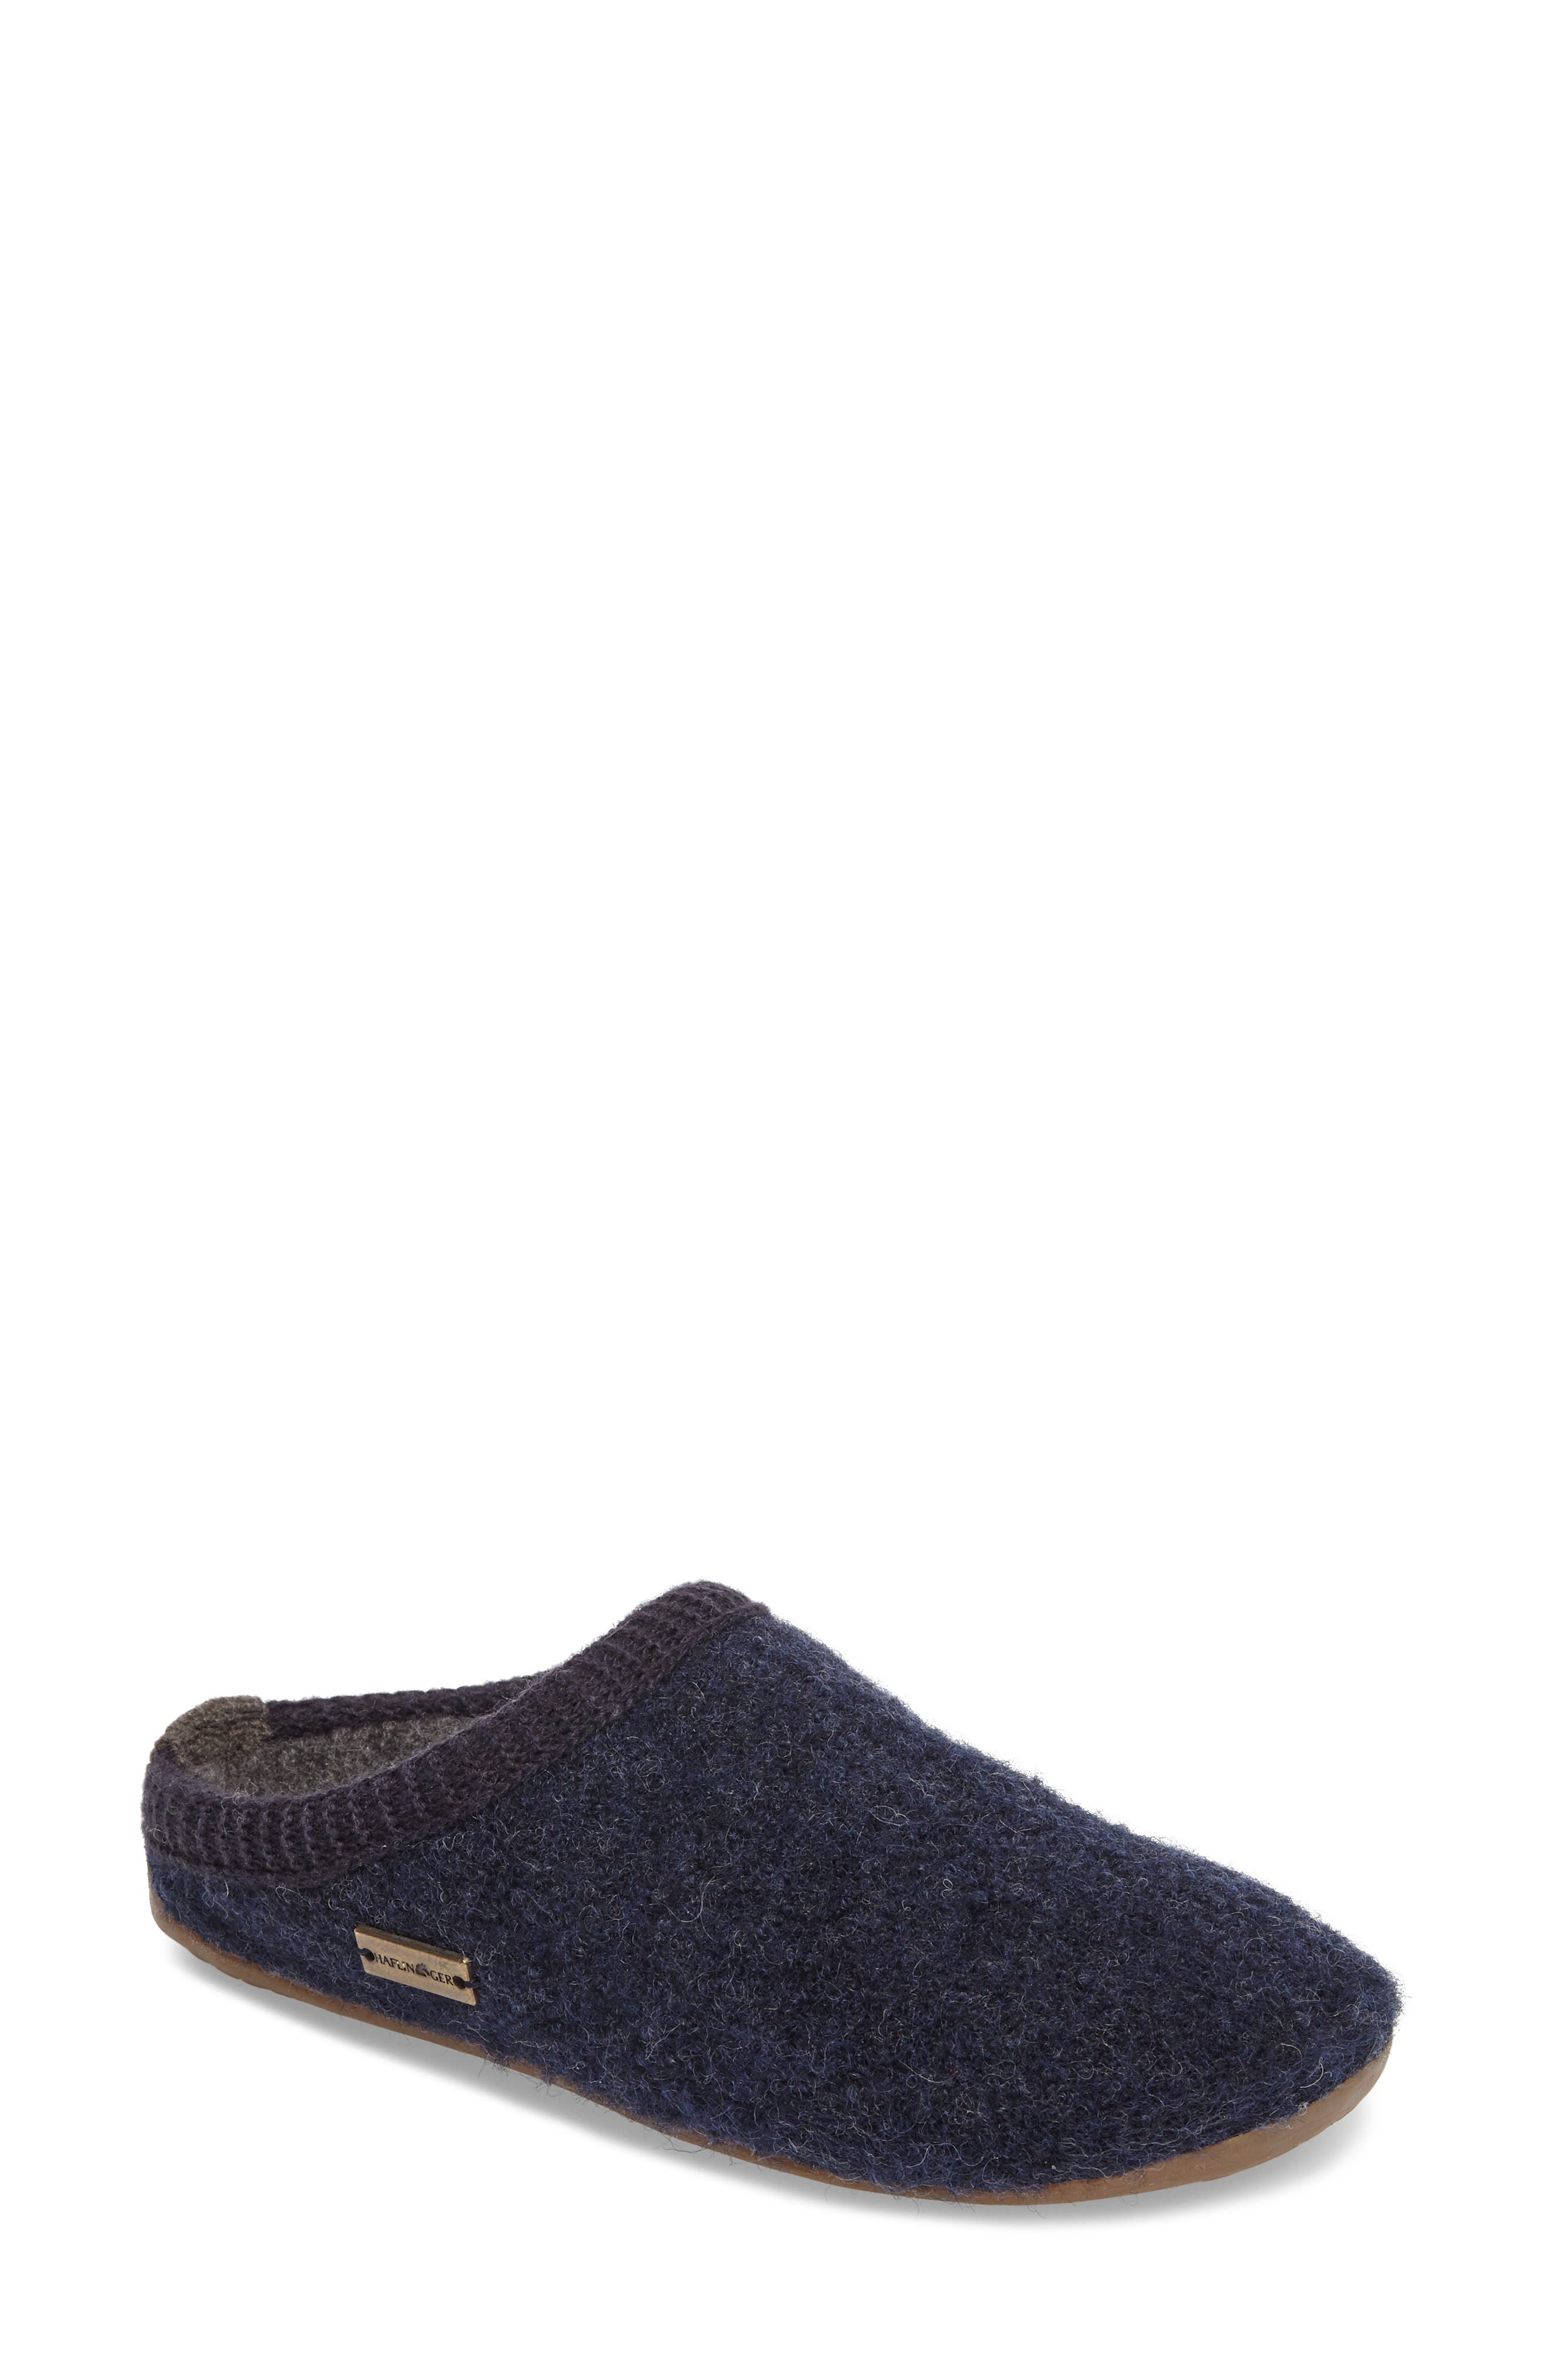 Dynamic Slipper,                         Main,                         color, Captains Blue Wool